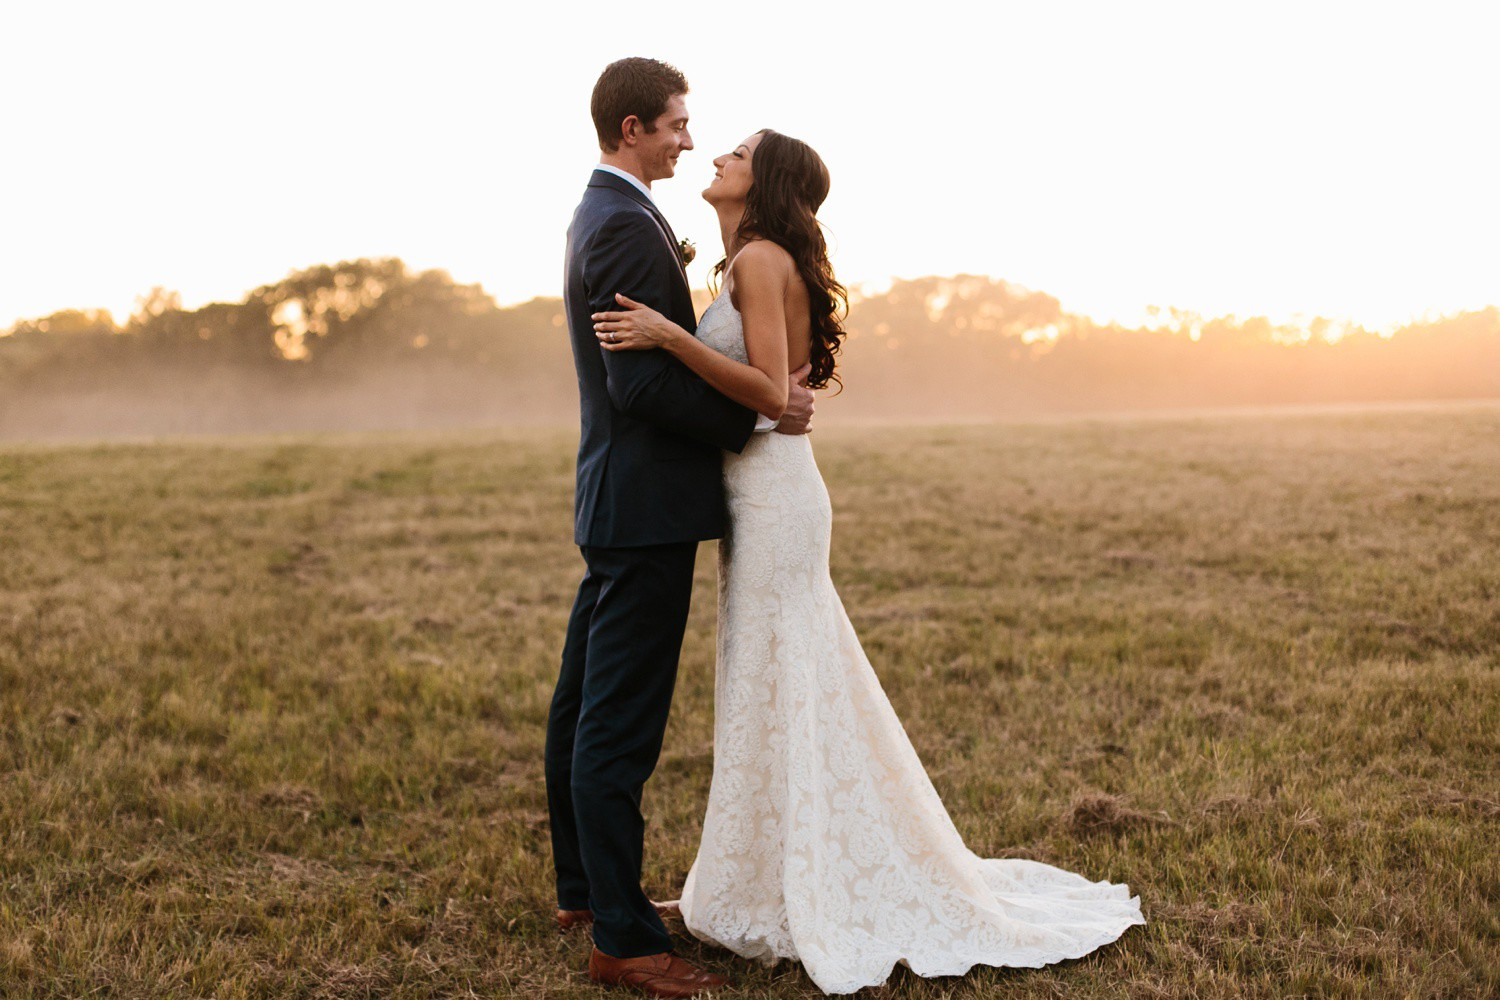 Erica + Henry | a bohemian inspired wedding